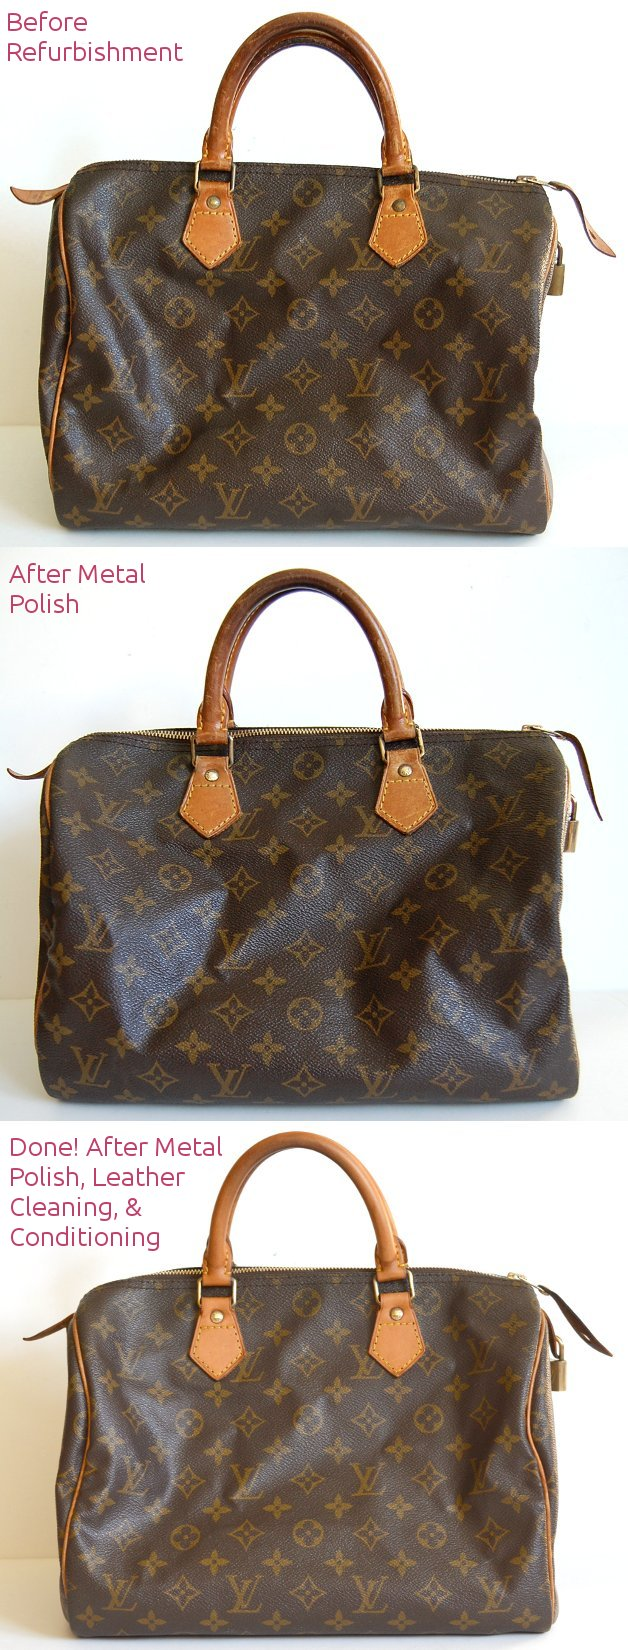 how to lighten louis vuitton leather make metal shiny clean refurbish to newer look